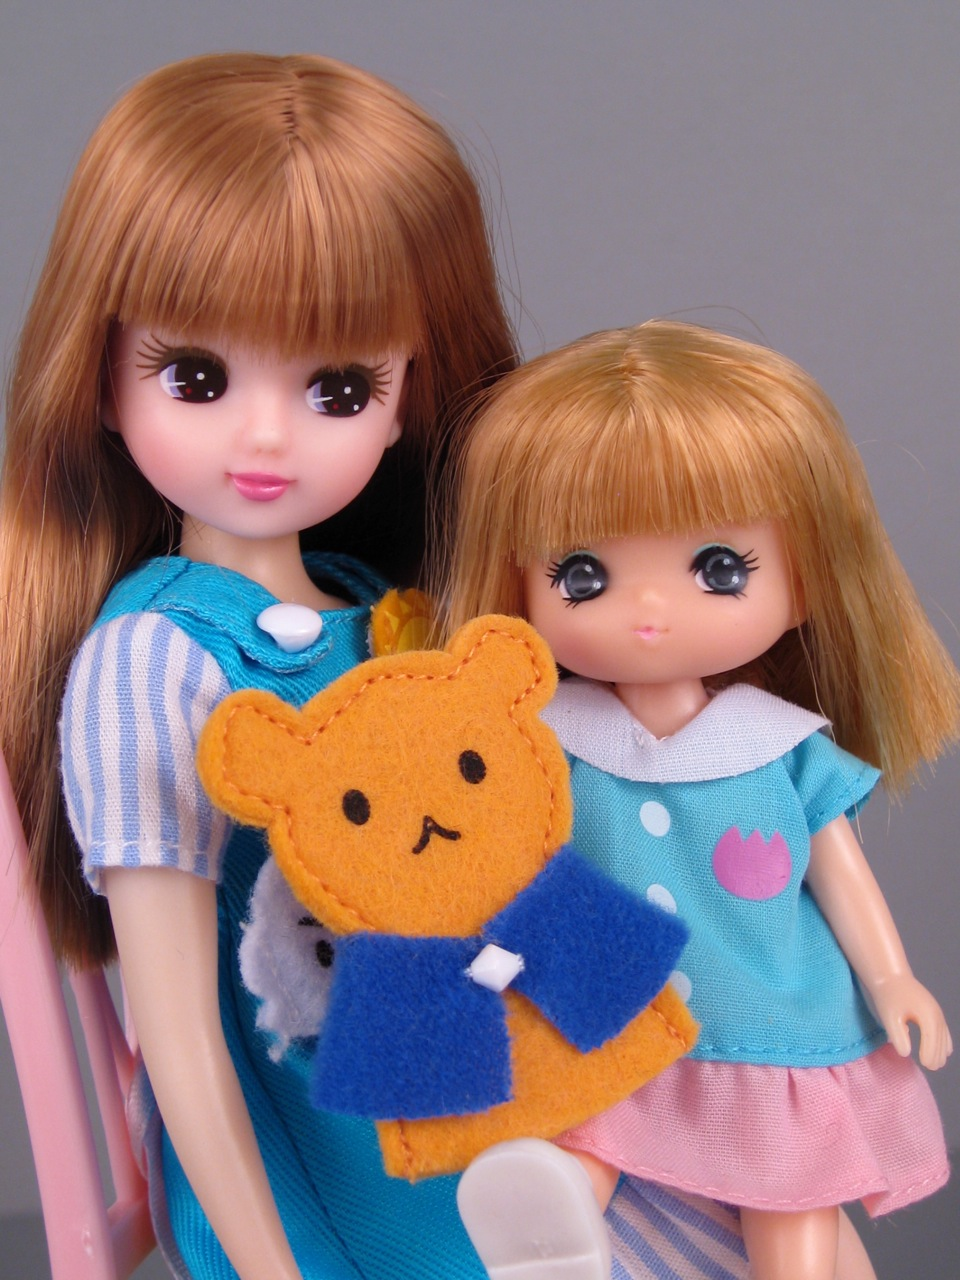 Licca-chan and Miki-chan by Takara | The Toy Box Philosopher